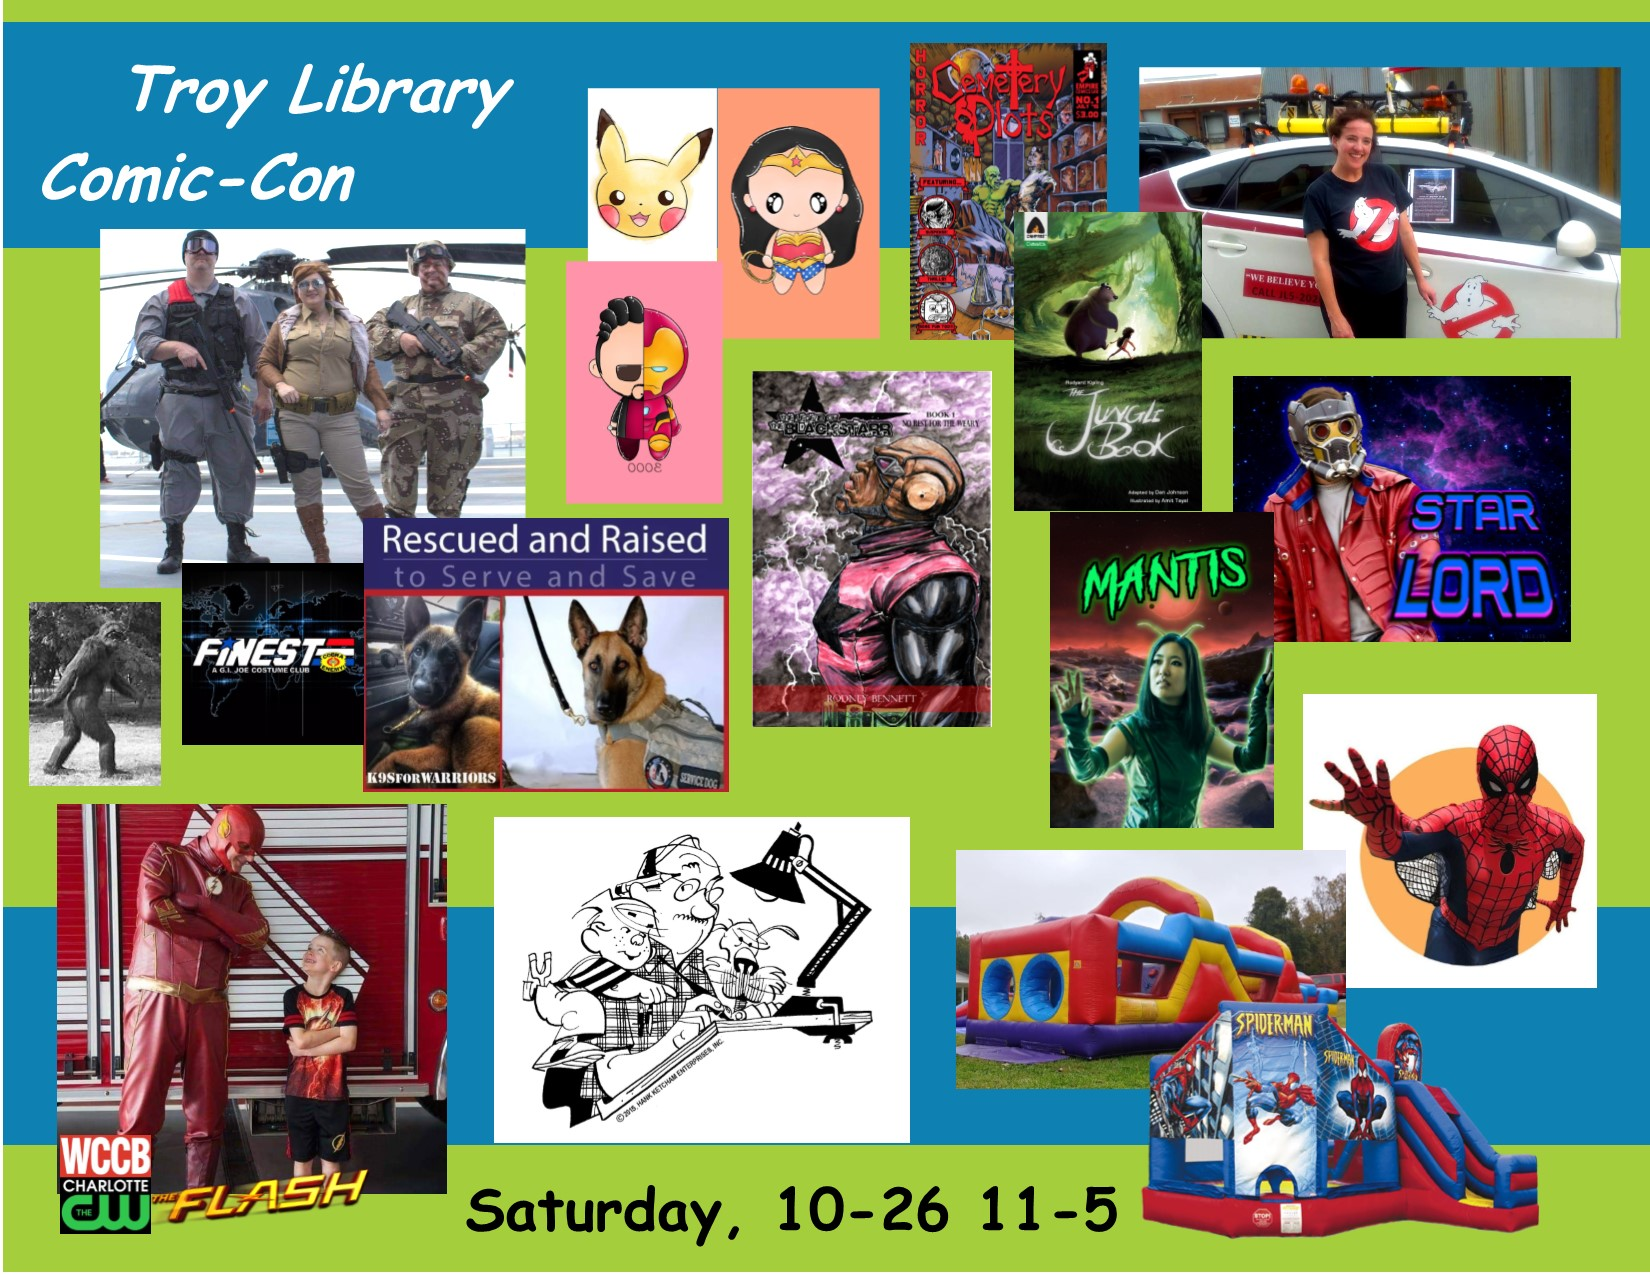 Troy Library Comic-Con 2019 Art & Character Collage L.jpg